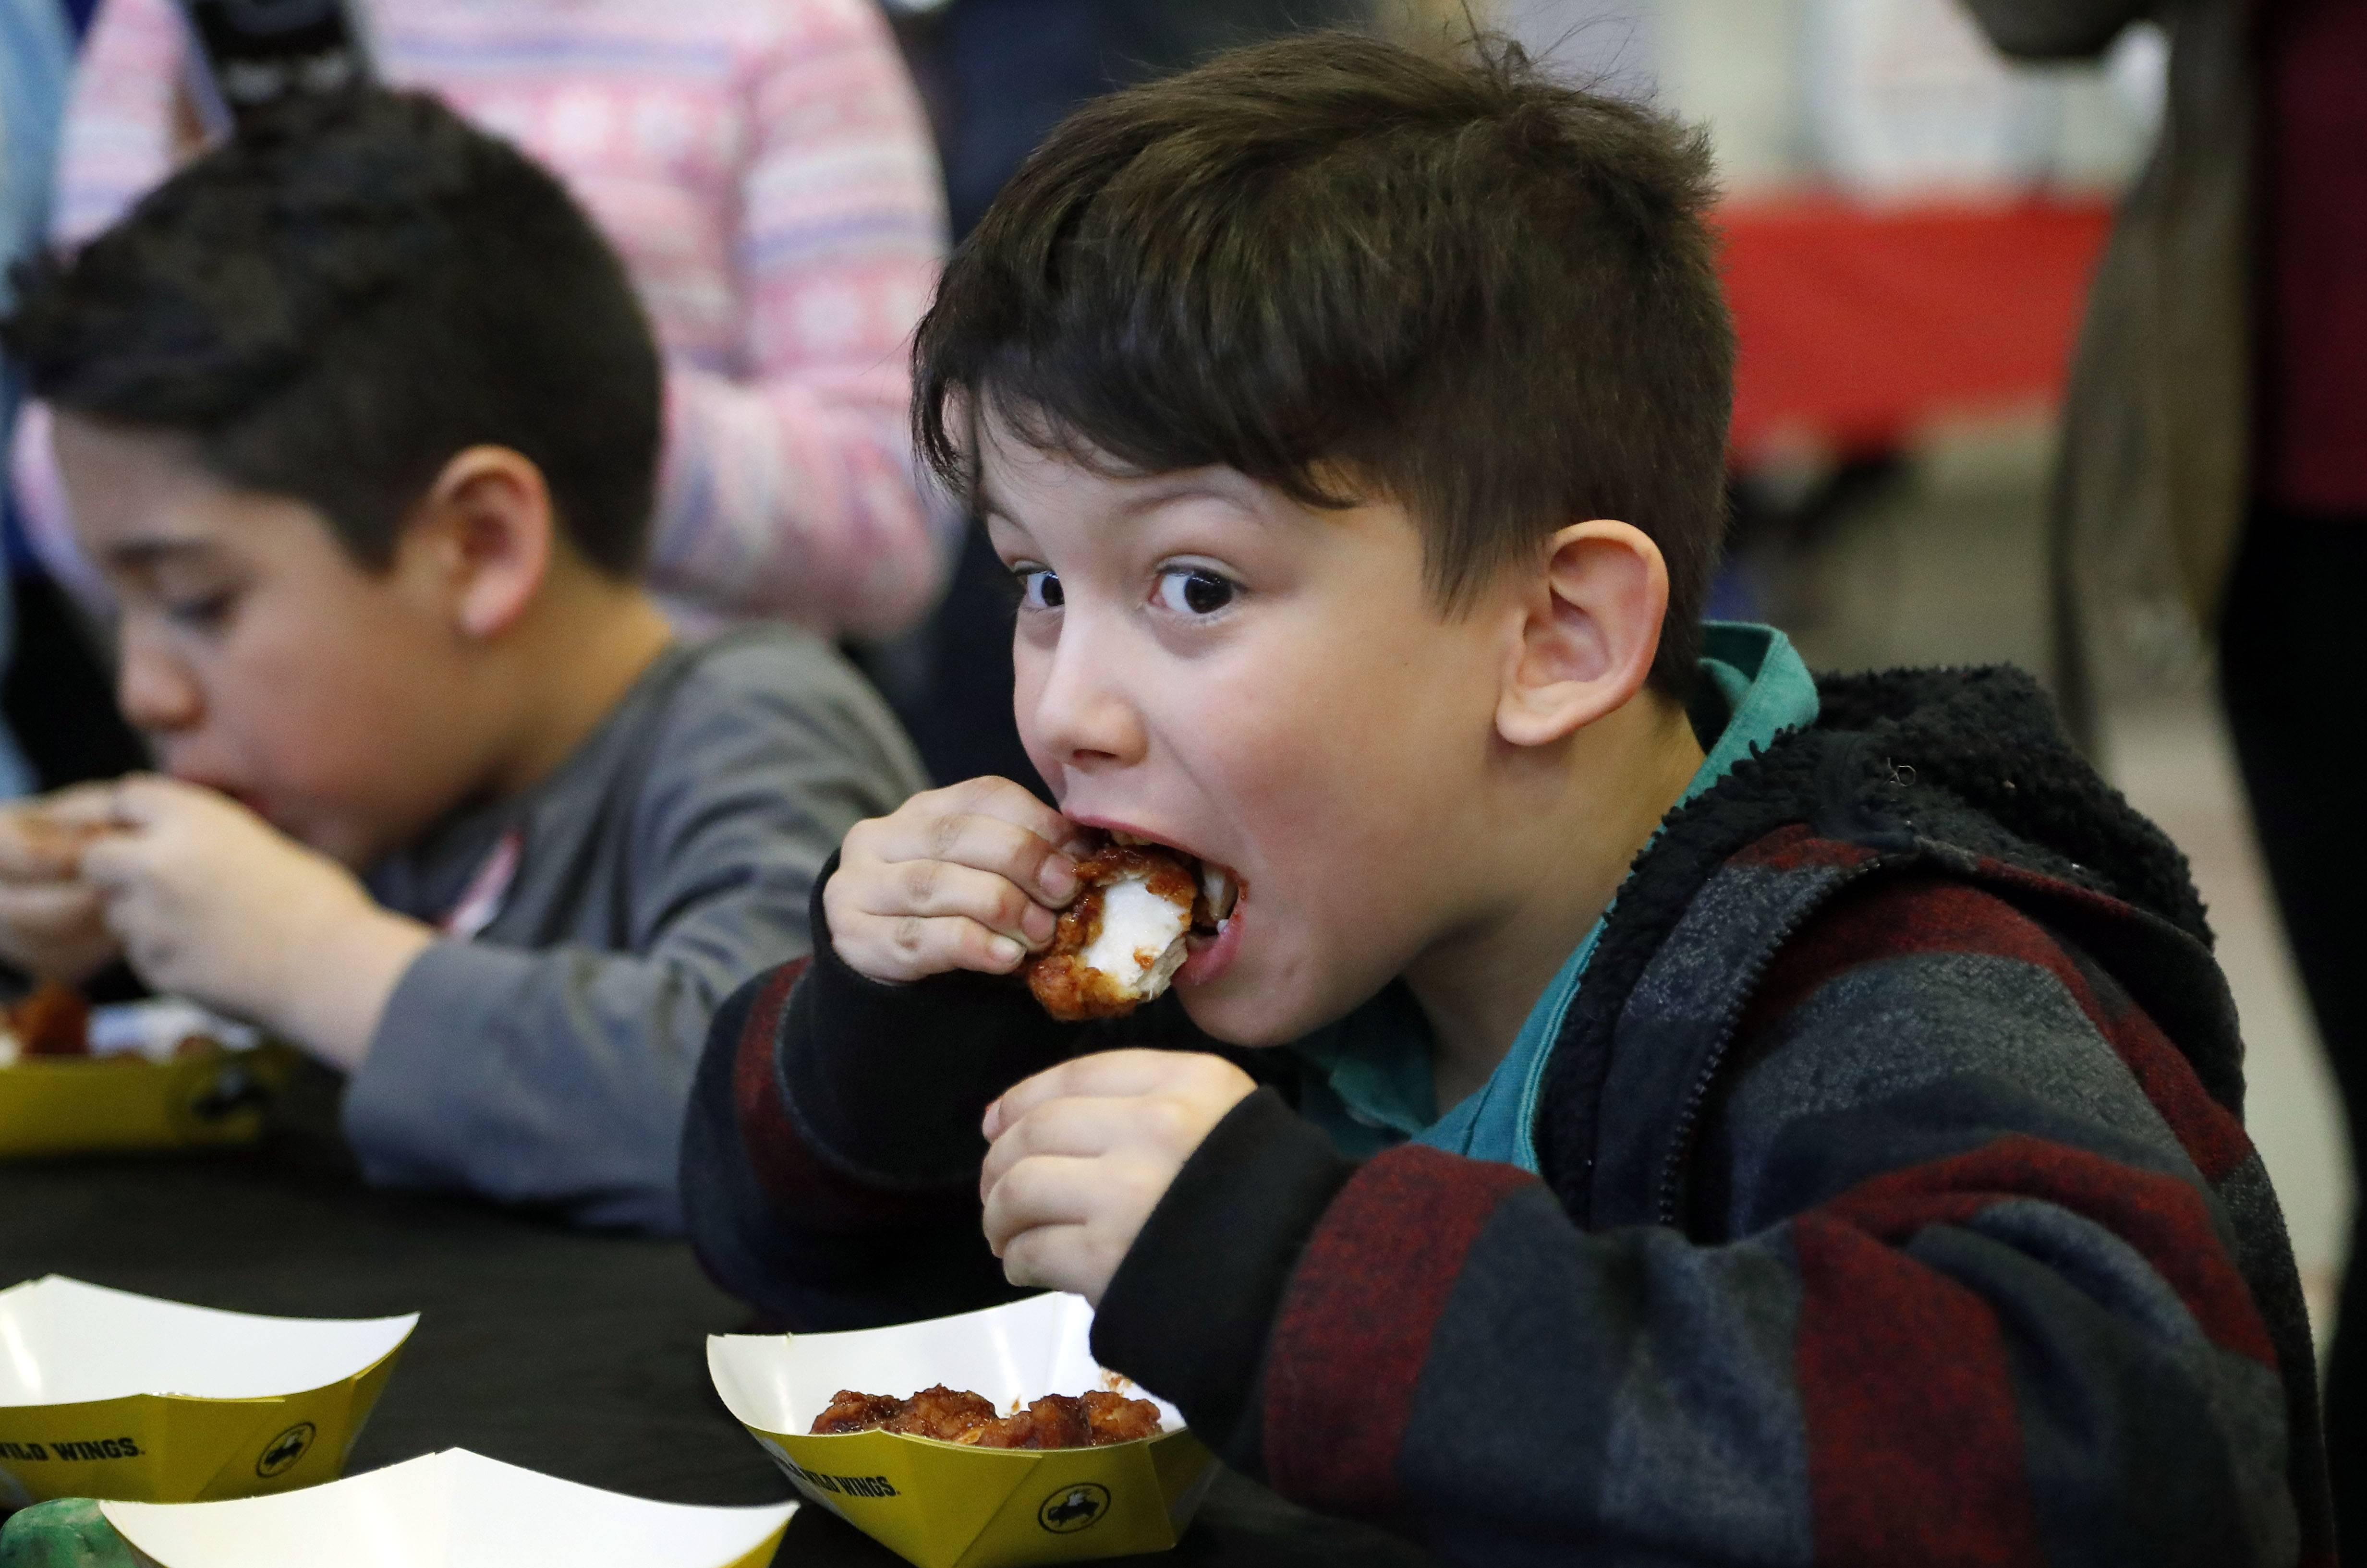 Jaidyn Antosh, 7, of Fox Lake participates in a chicken wing eating contest during the Community Block Party Expo and Craft Fair at the Round Lake Area Park District Sports Center Saturday.